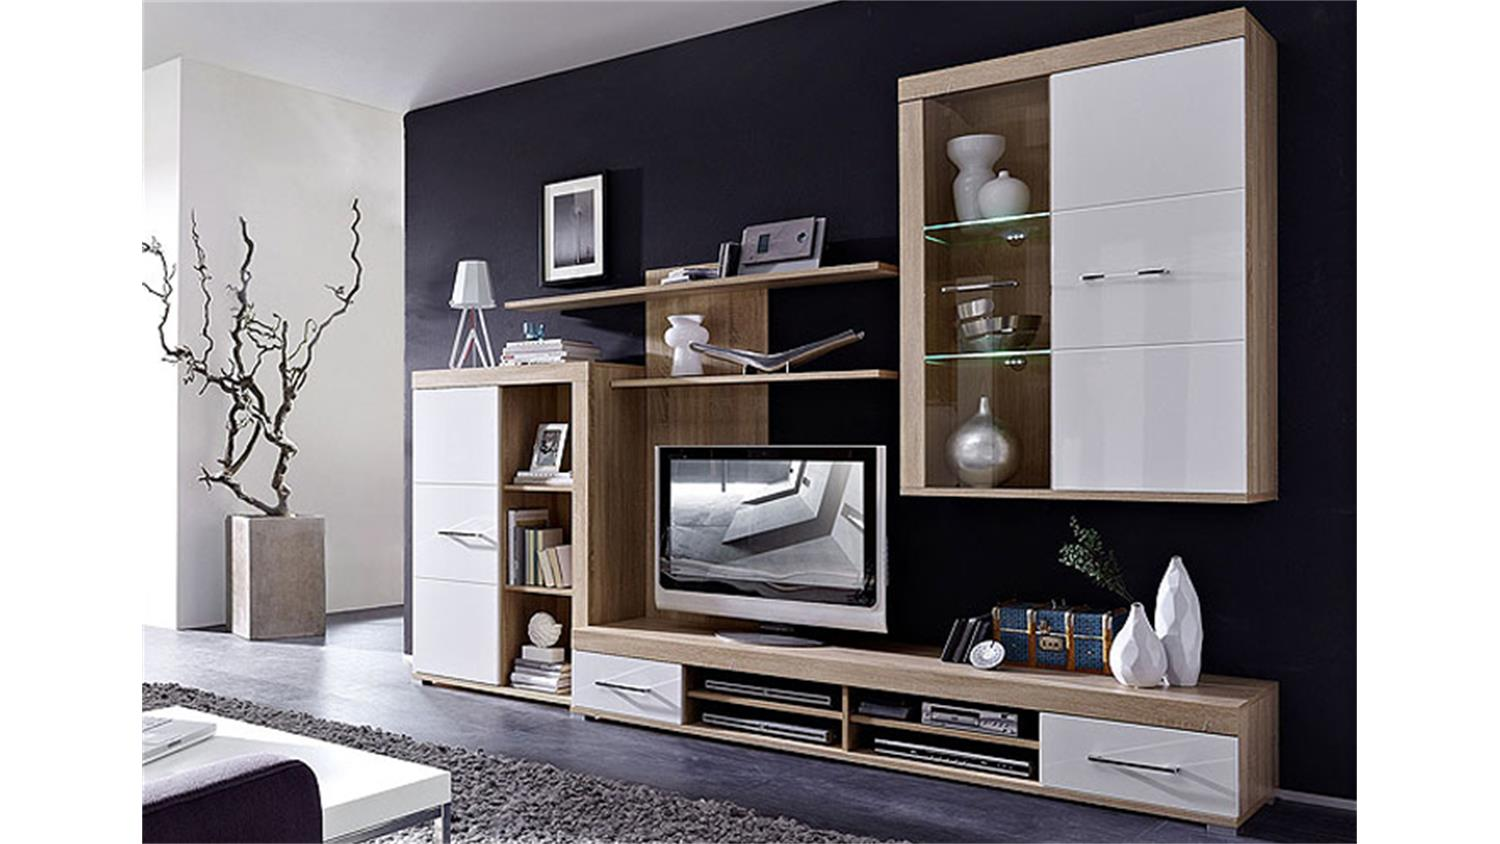 wohnzimmerm bel wei hochglanz. Black Bedroom Furniture Sets. Home Design Ideas